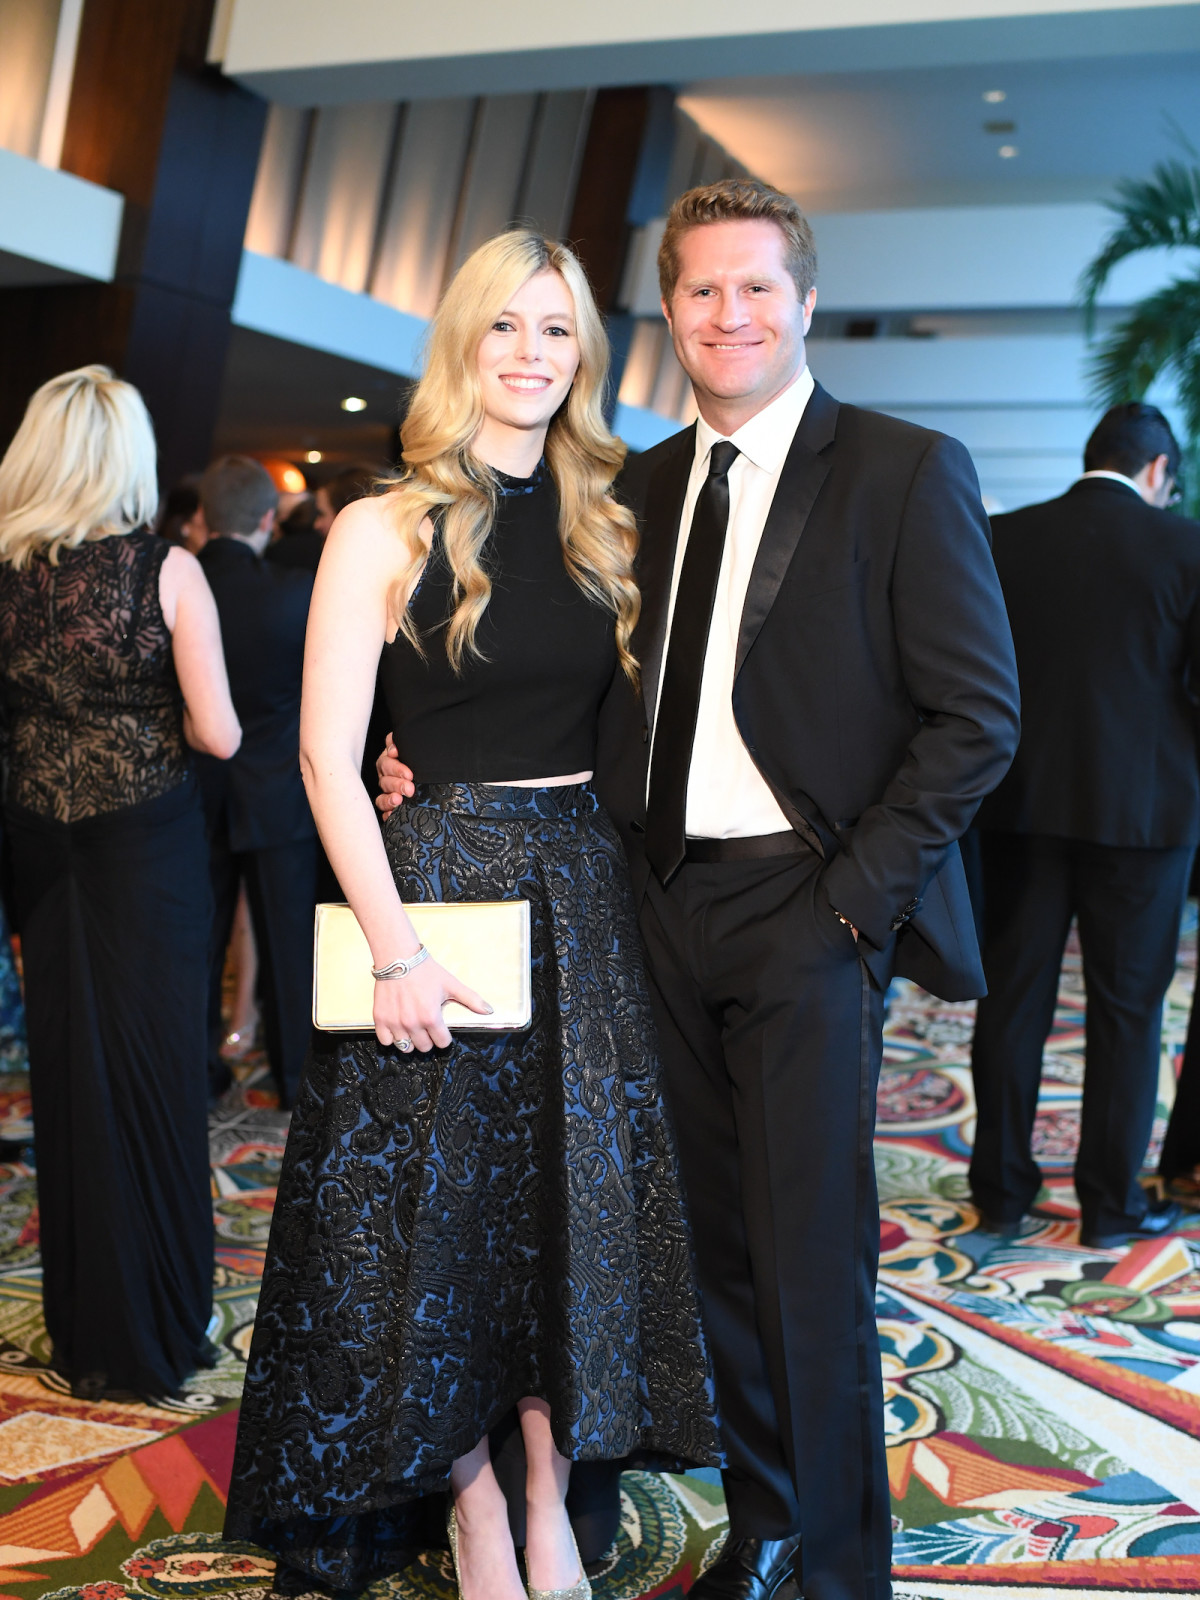 Kimberly Falgout, Evan Scheele at Memorial Hermann Gala